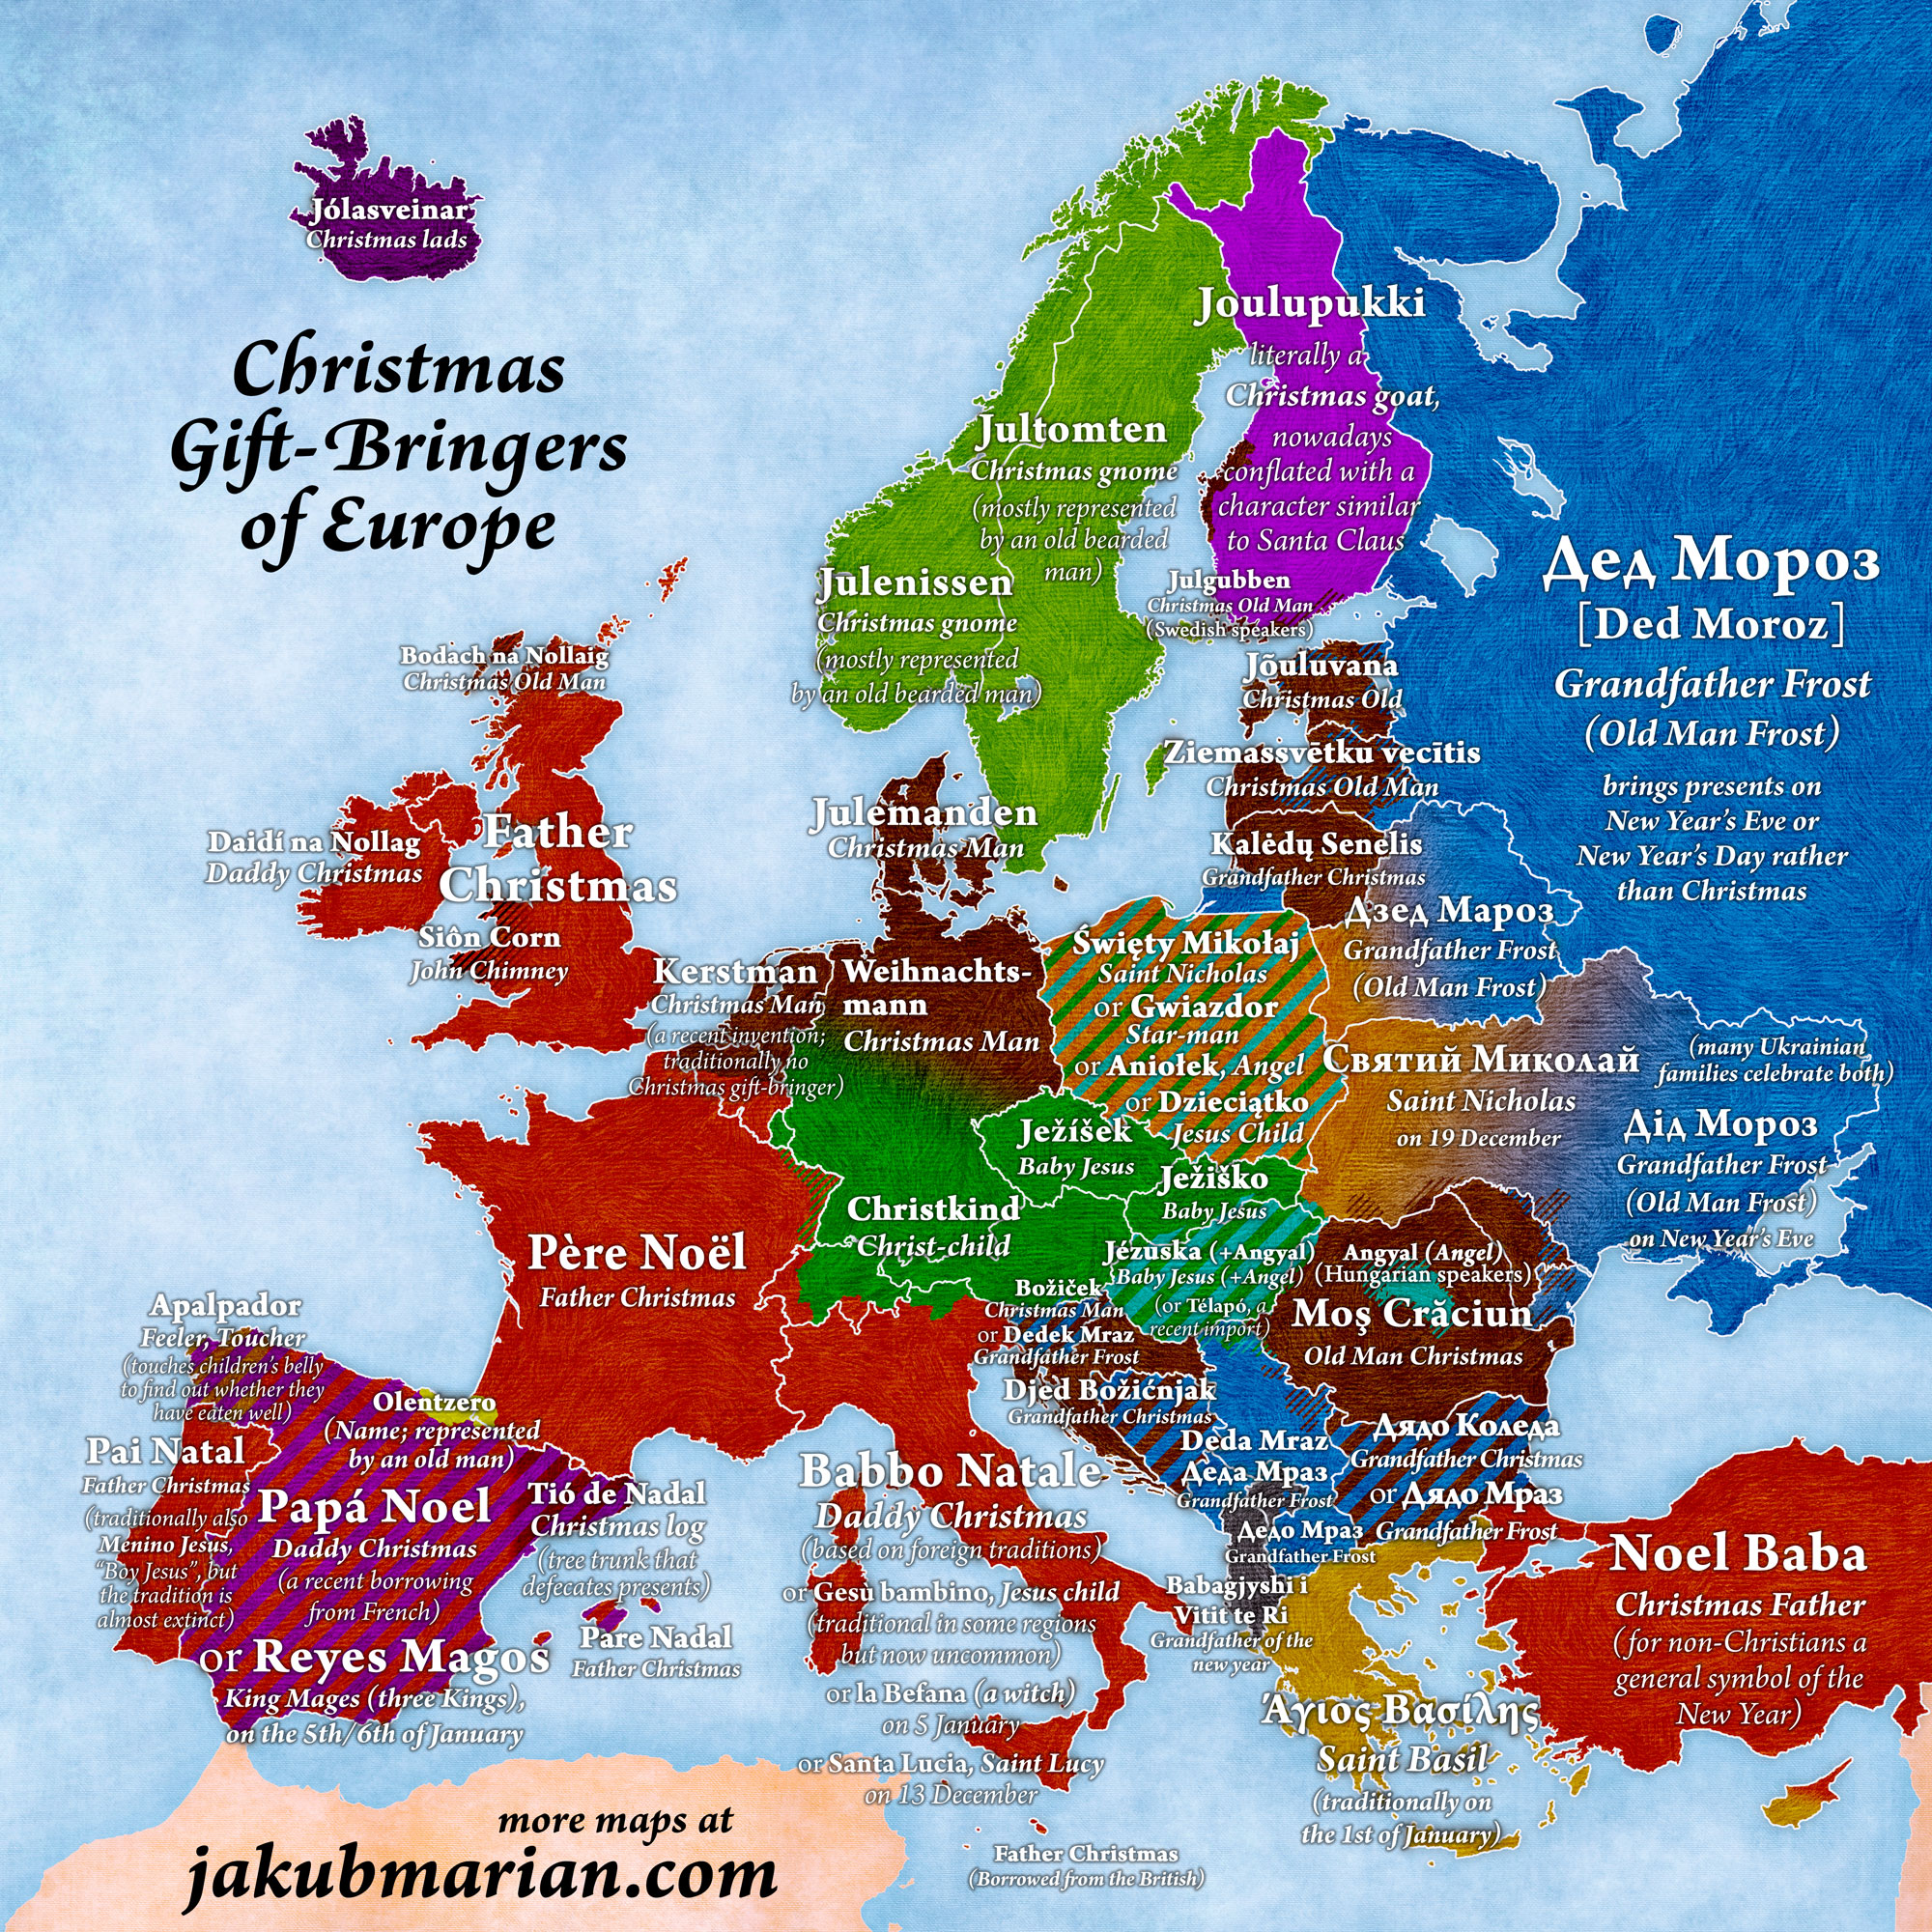 Christmas Gift-Bringers of Europe